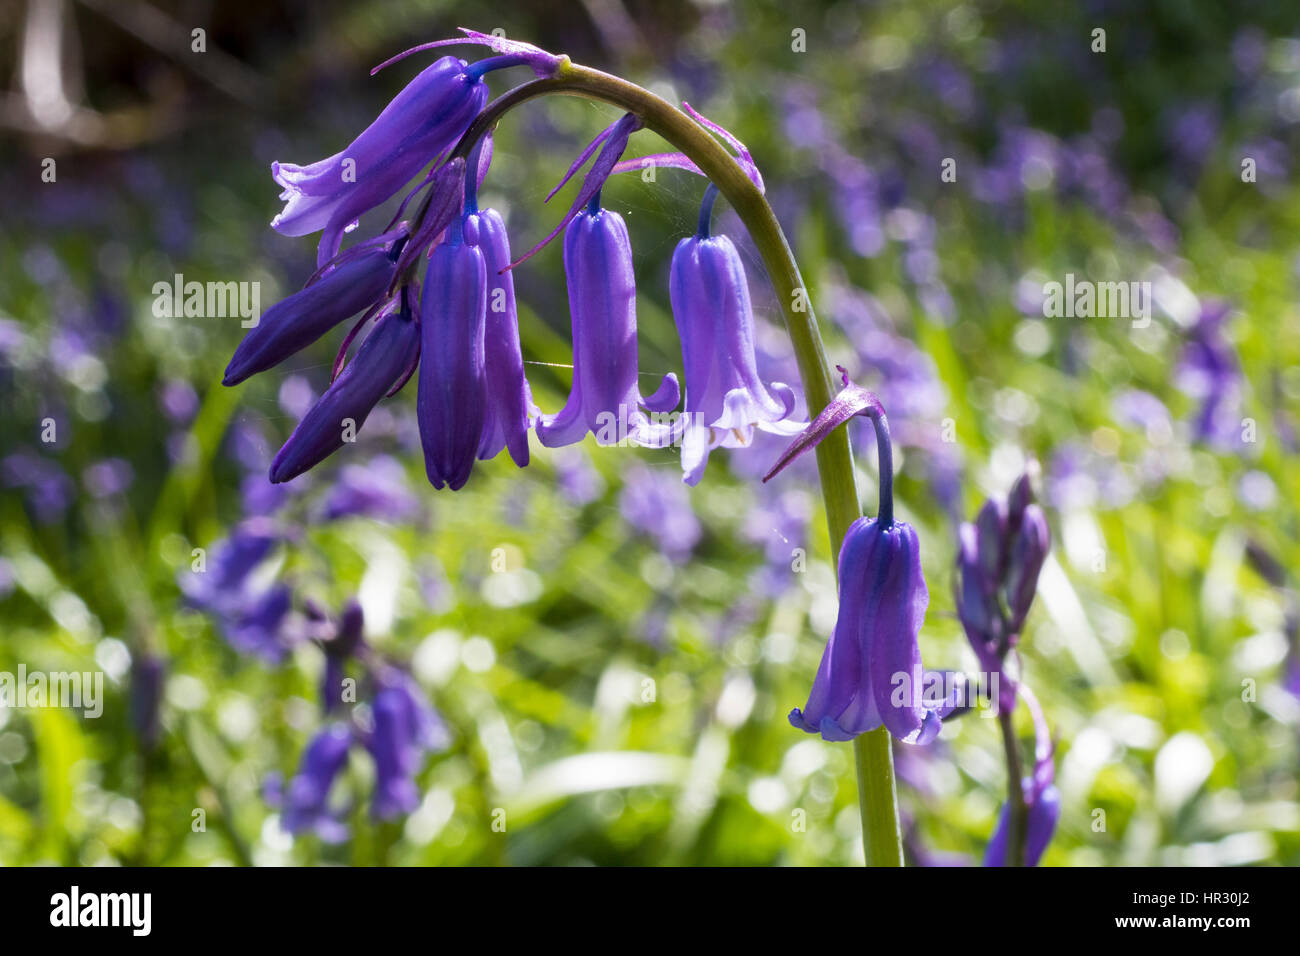 Close up Detail of a Single Bluebell Flower (Hyacinthoides non-scripta) Amongst a Large Cluster in a North Devon - Stock Image